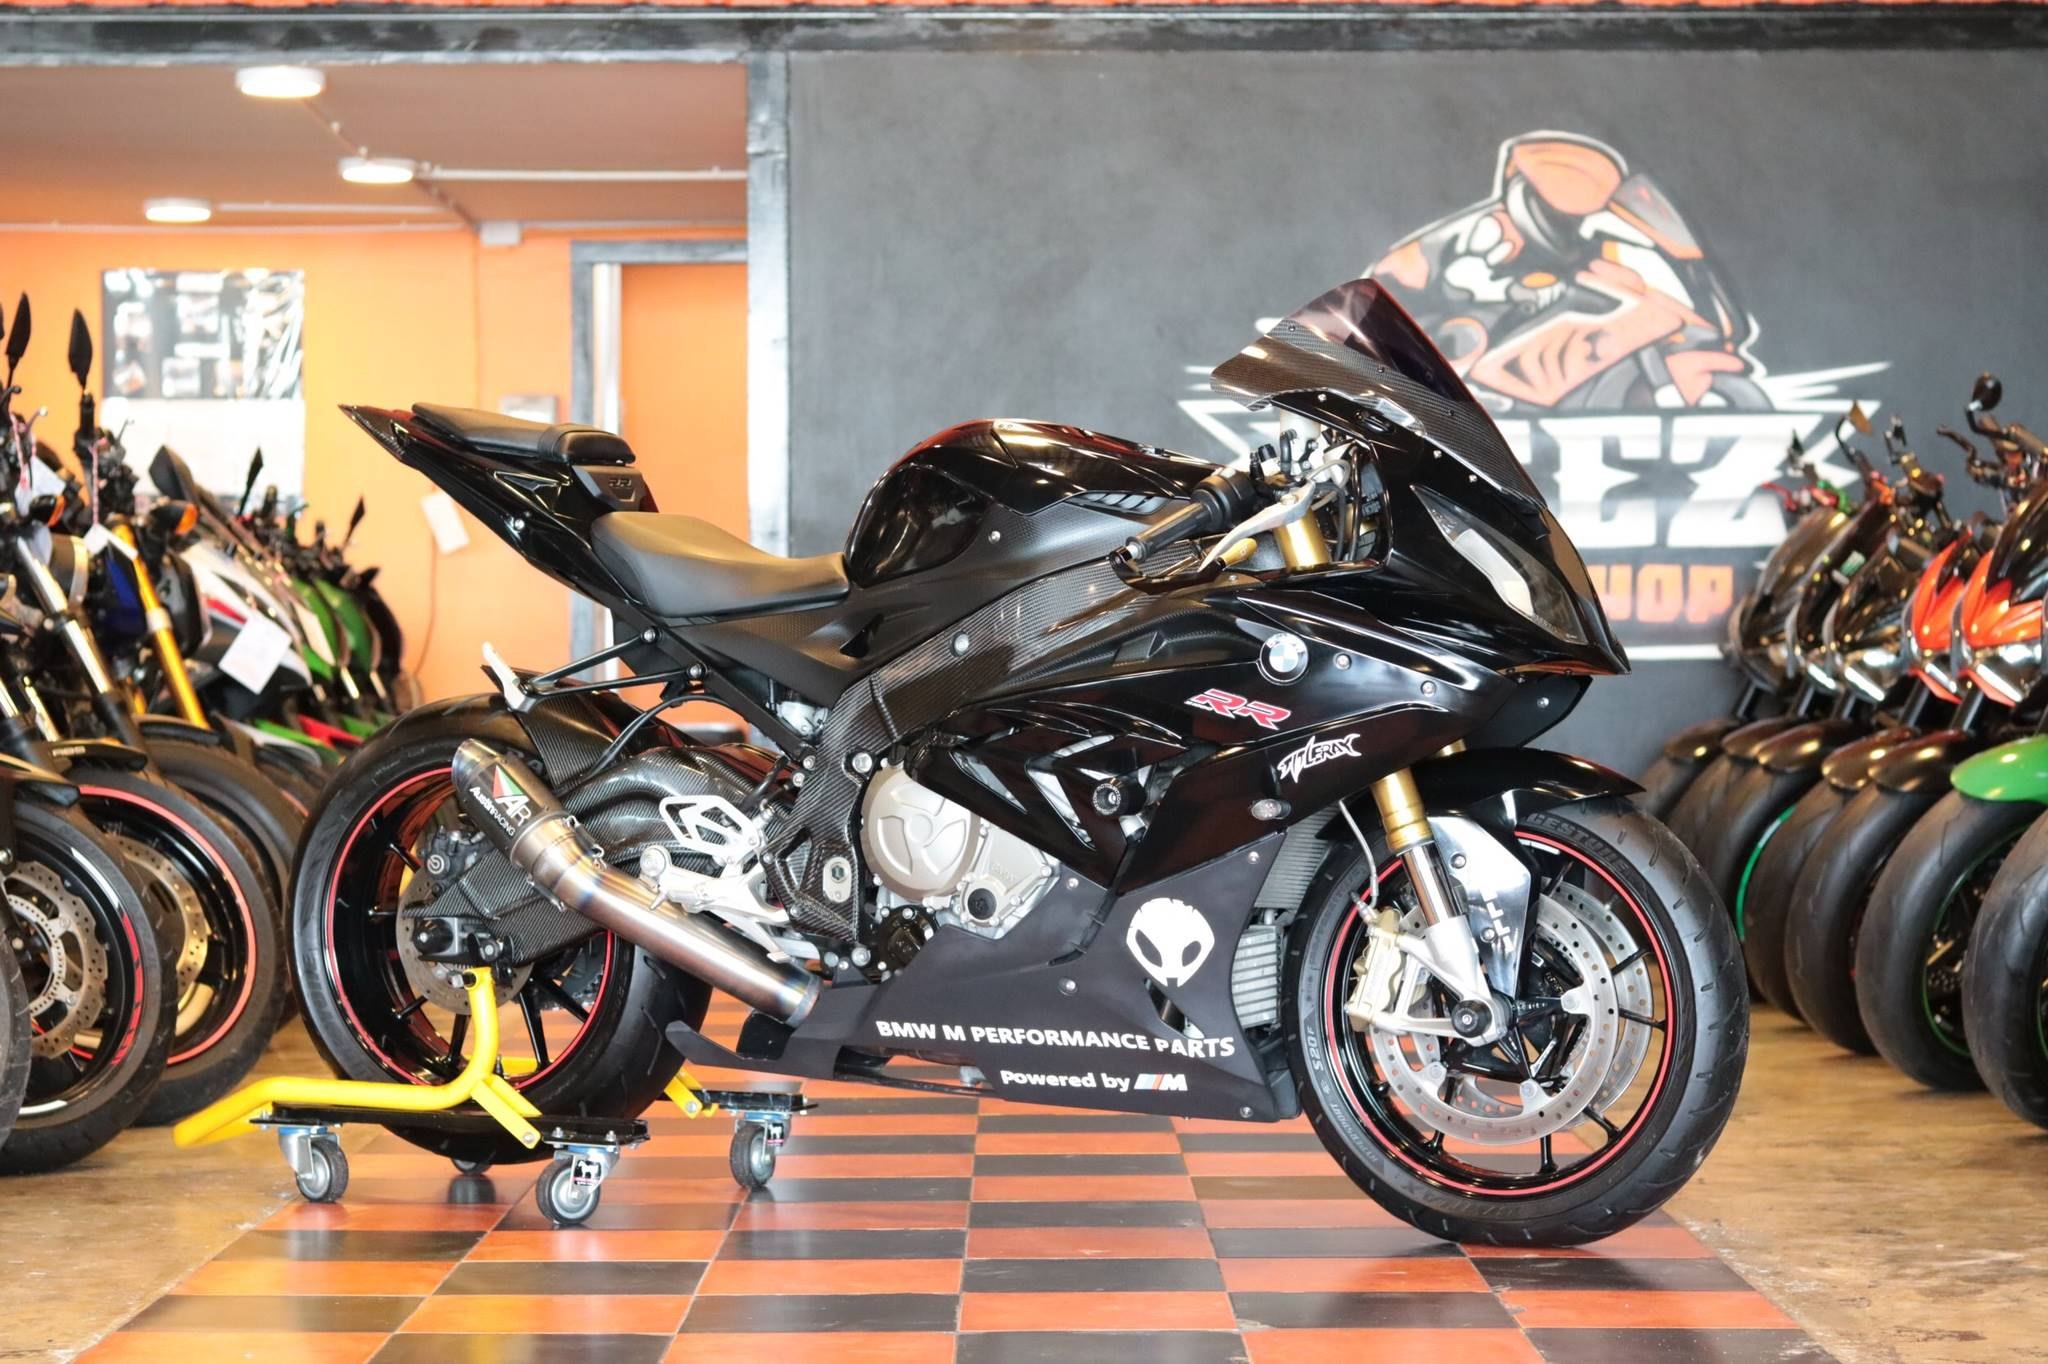 BMW S1000RR ABS ปี 2016